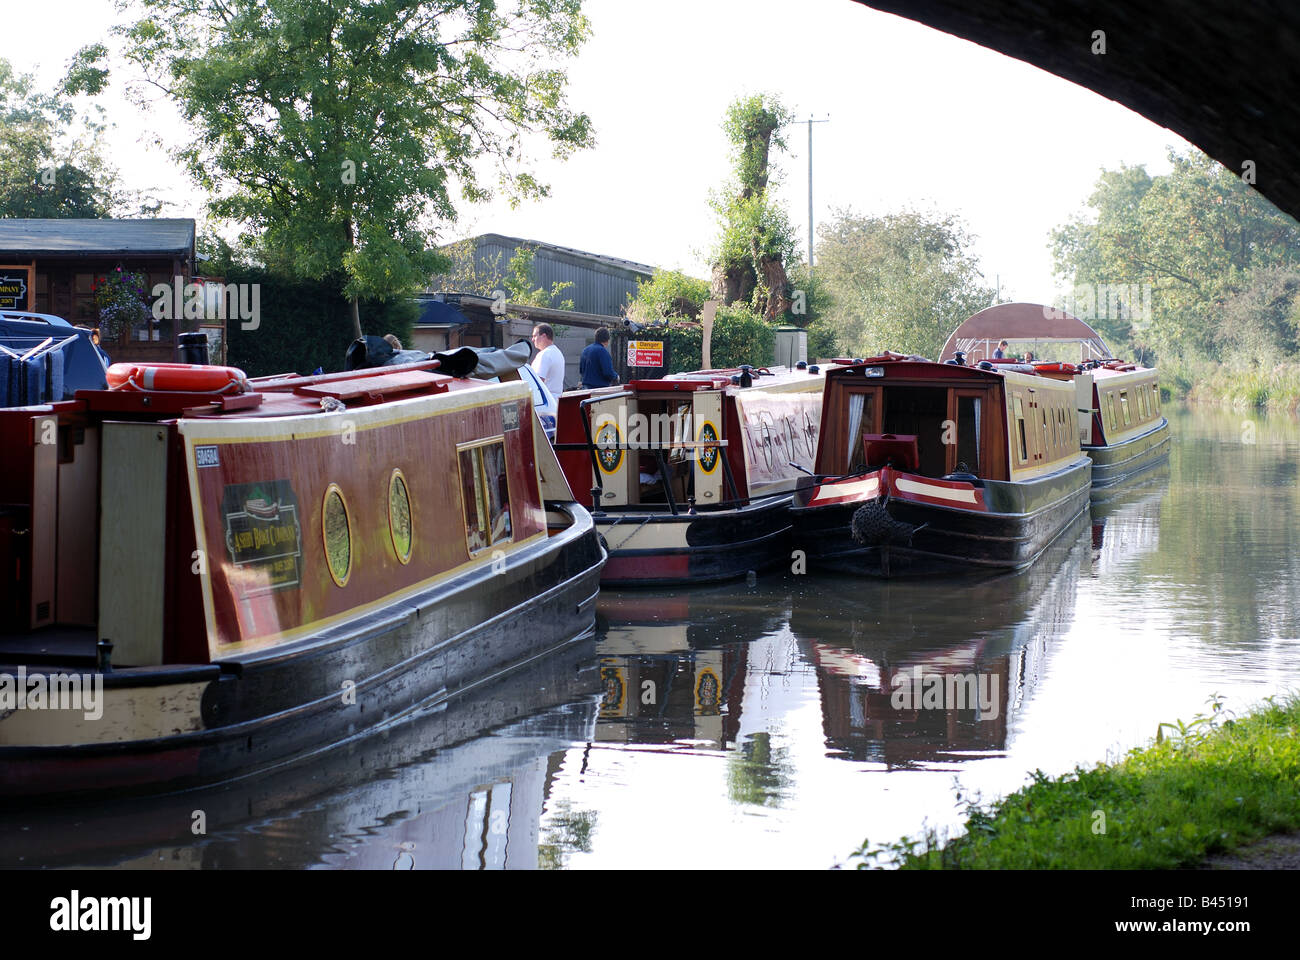 The Ashby Canal at Stoke Golding Wharf, Leicestershire, England, UK - Stock Image